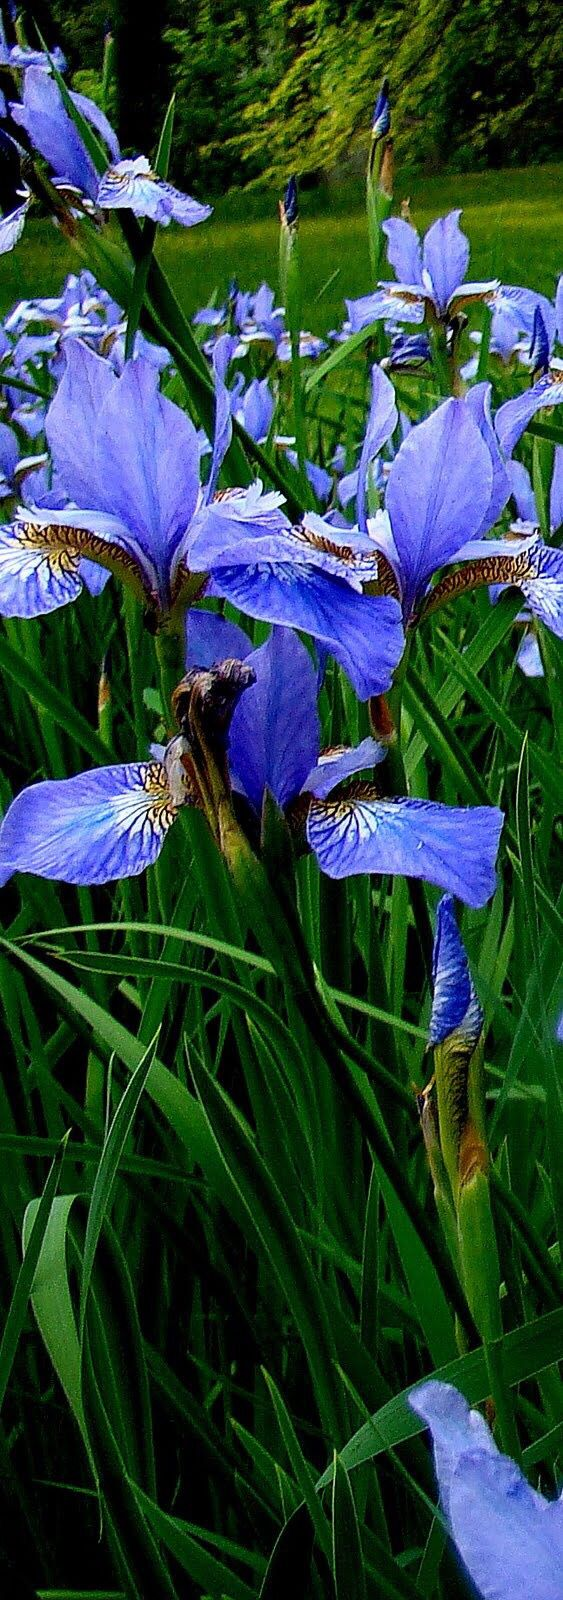 Wild iris big flowers pinterest wild iris iris and flowers there are three ponds in high falls alpha beta and gamma each a little smaller than the other alpha is the larger of the three and t izmirmasajfo